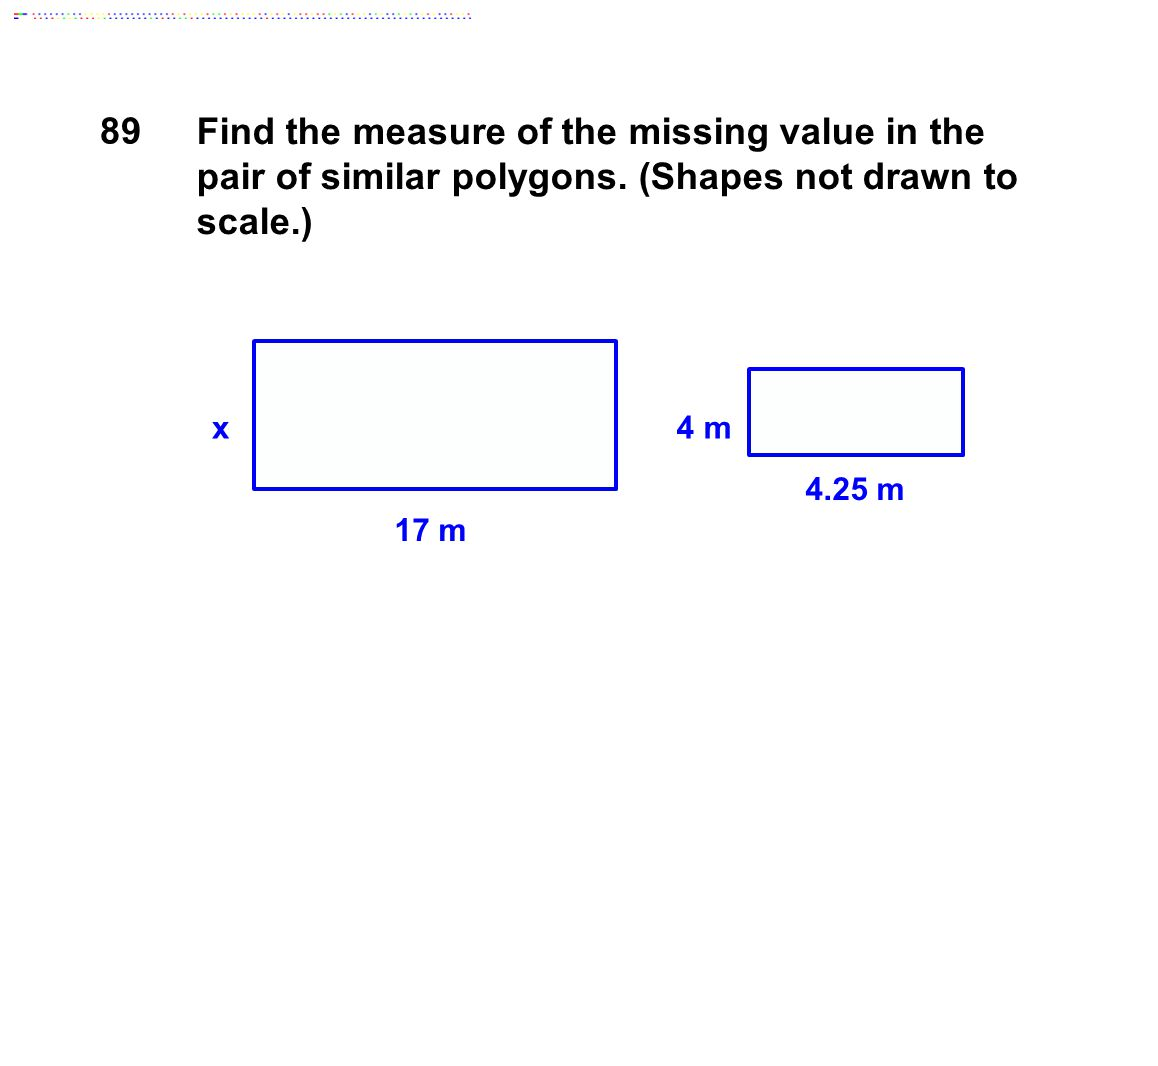 17 m 4.25 m 4 mx Find the measure of the missing value in the pair of similar polygons. (Shapes not drawn to scale.) 89